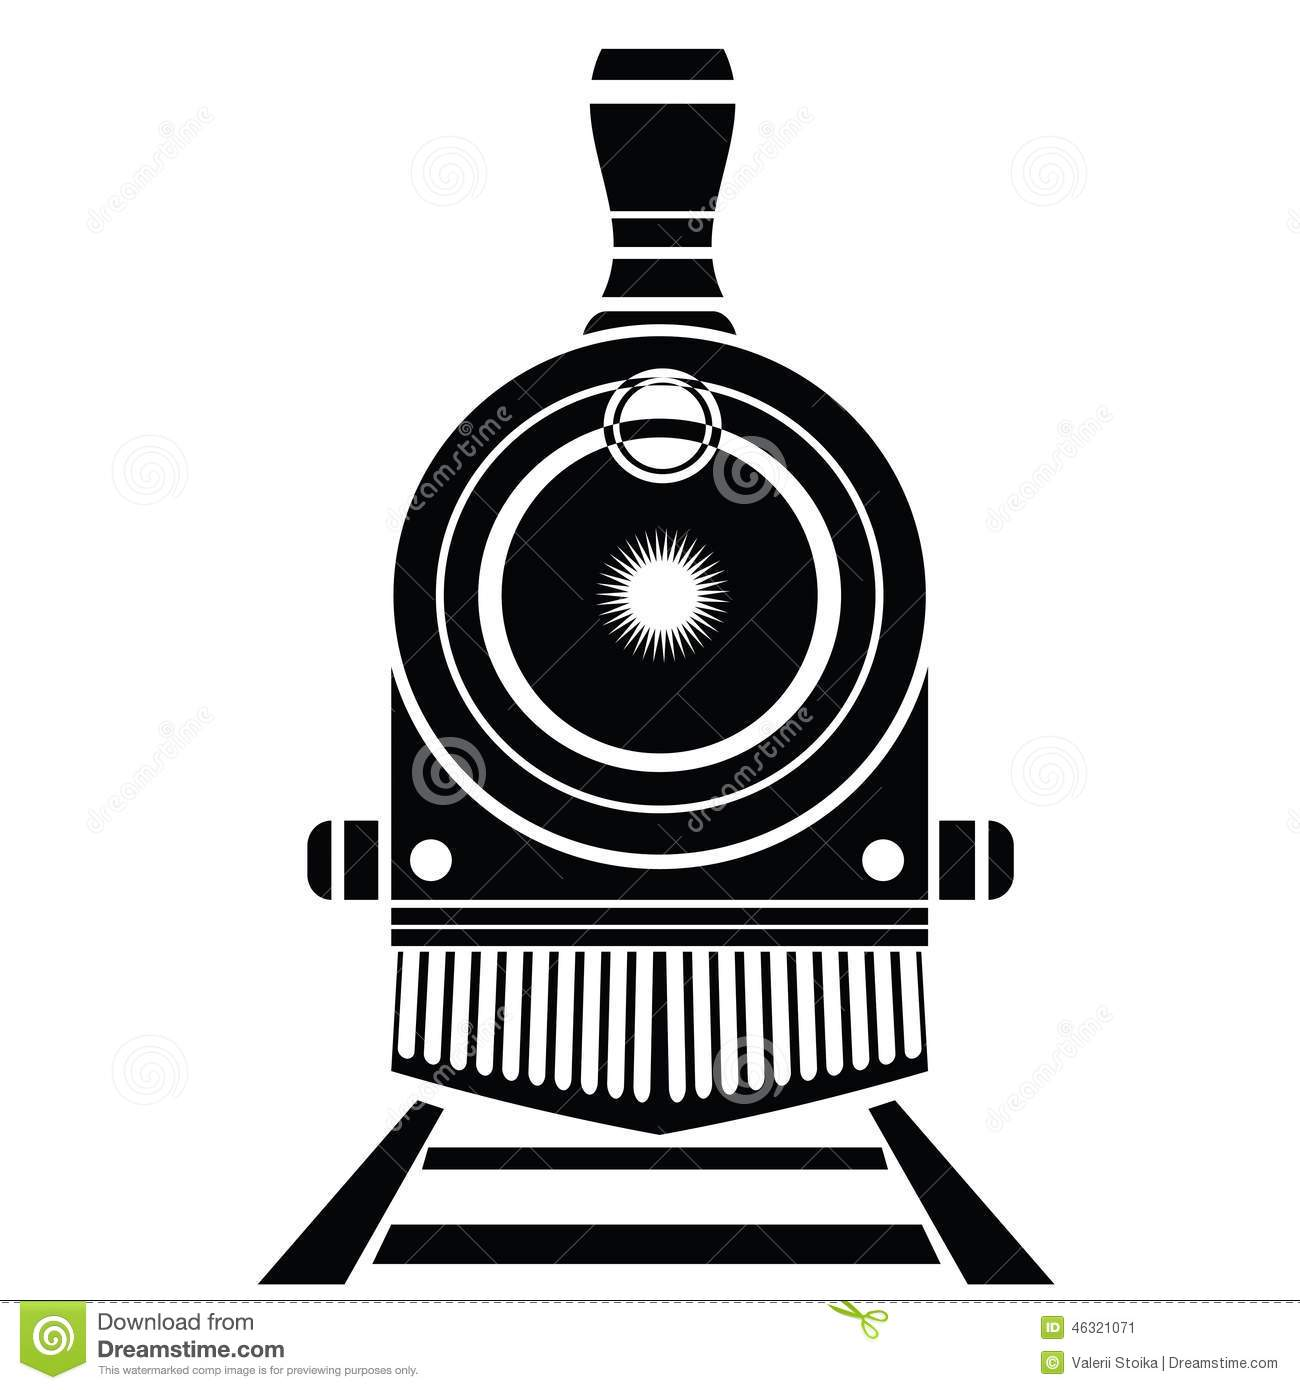 Vintage Steam Train Illustration - Shutterstock